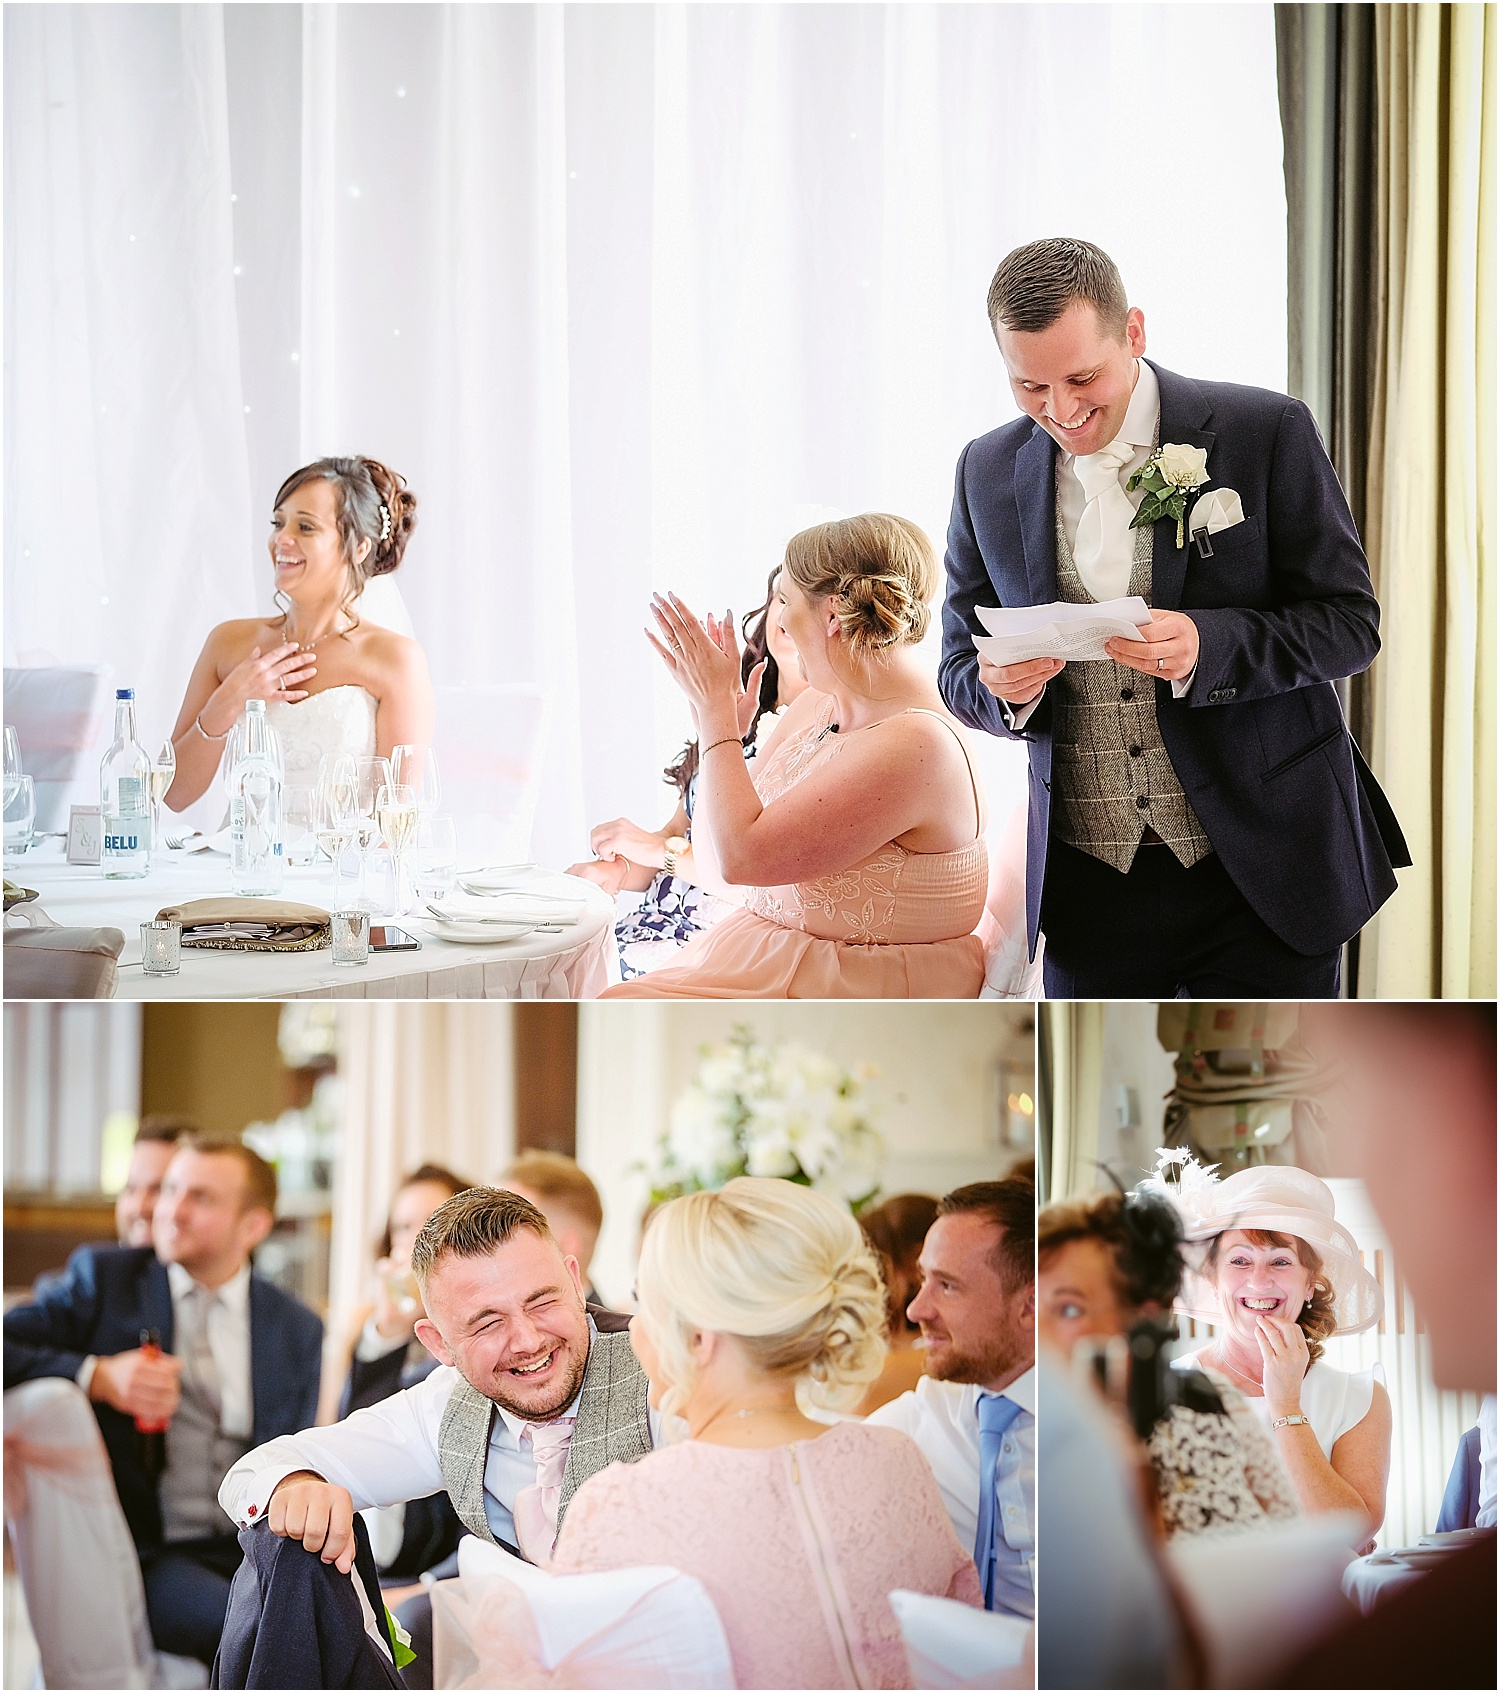 Wedding at Seaham Hall - wedding photography by www.2tonephotography.co.uk 065.jpg